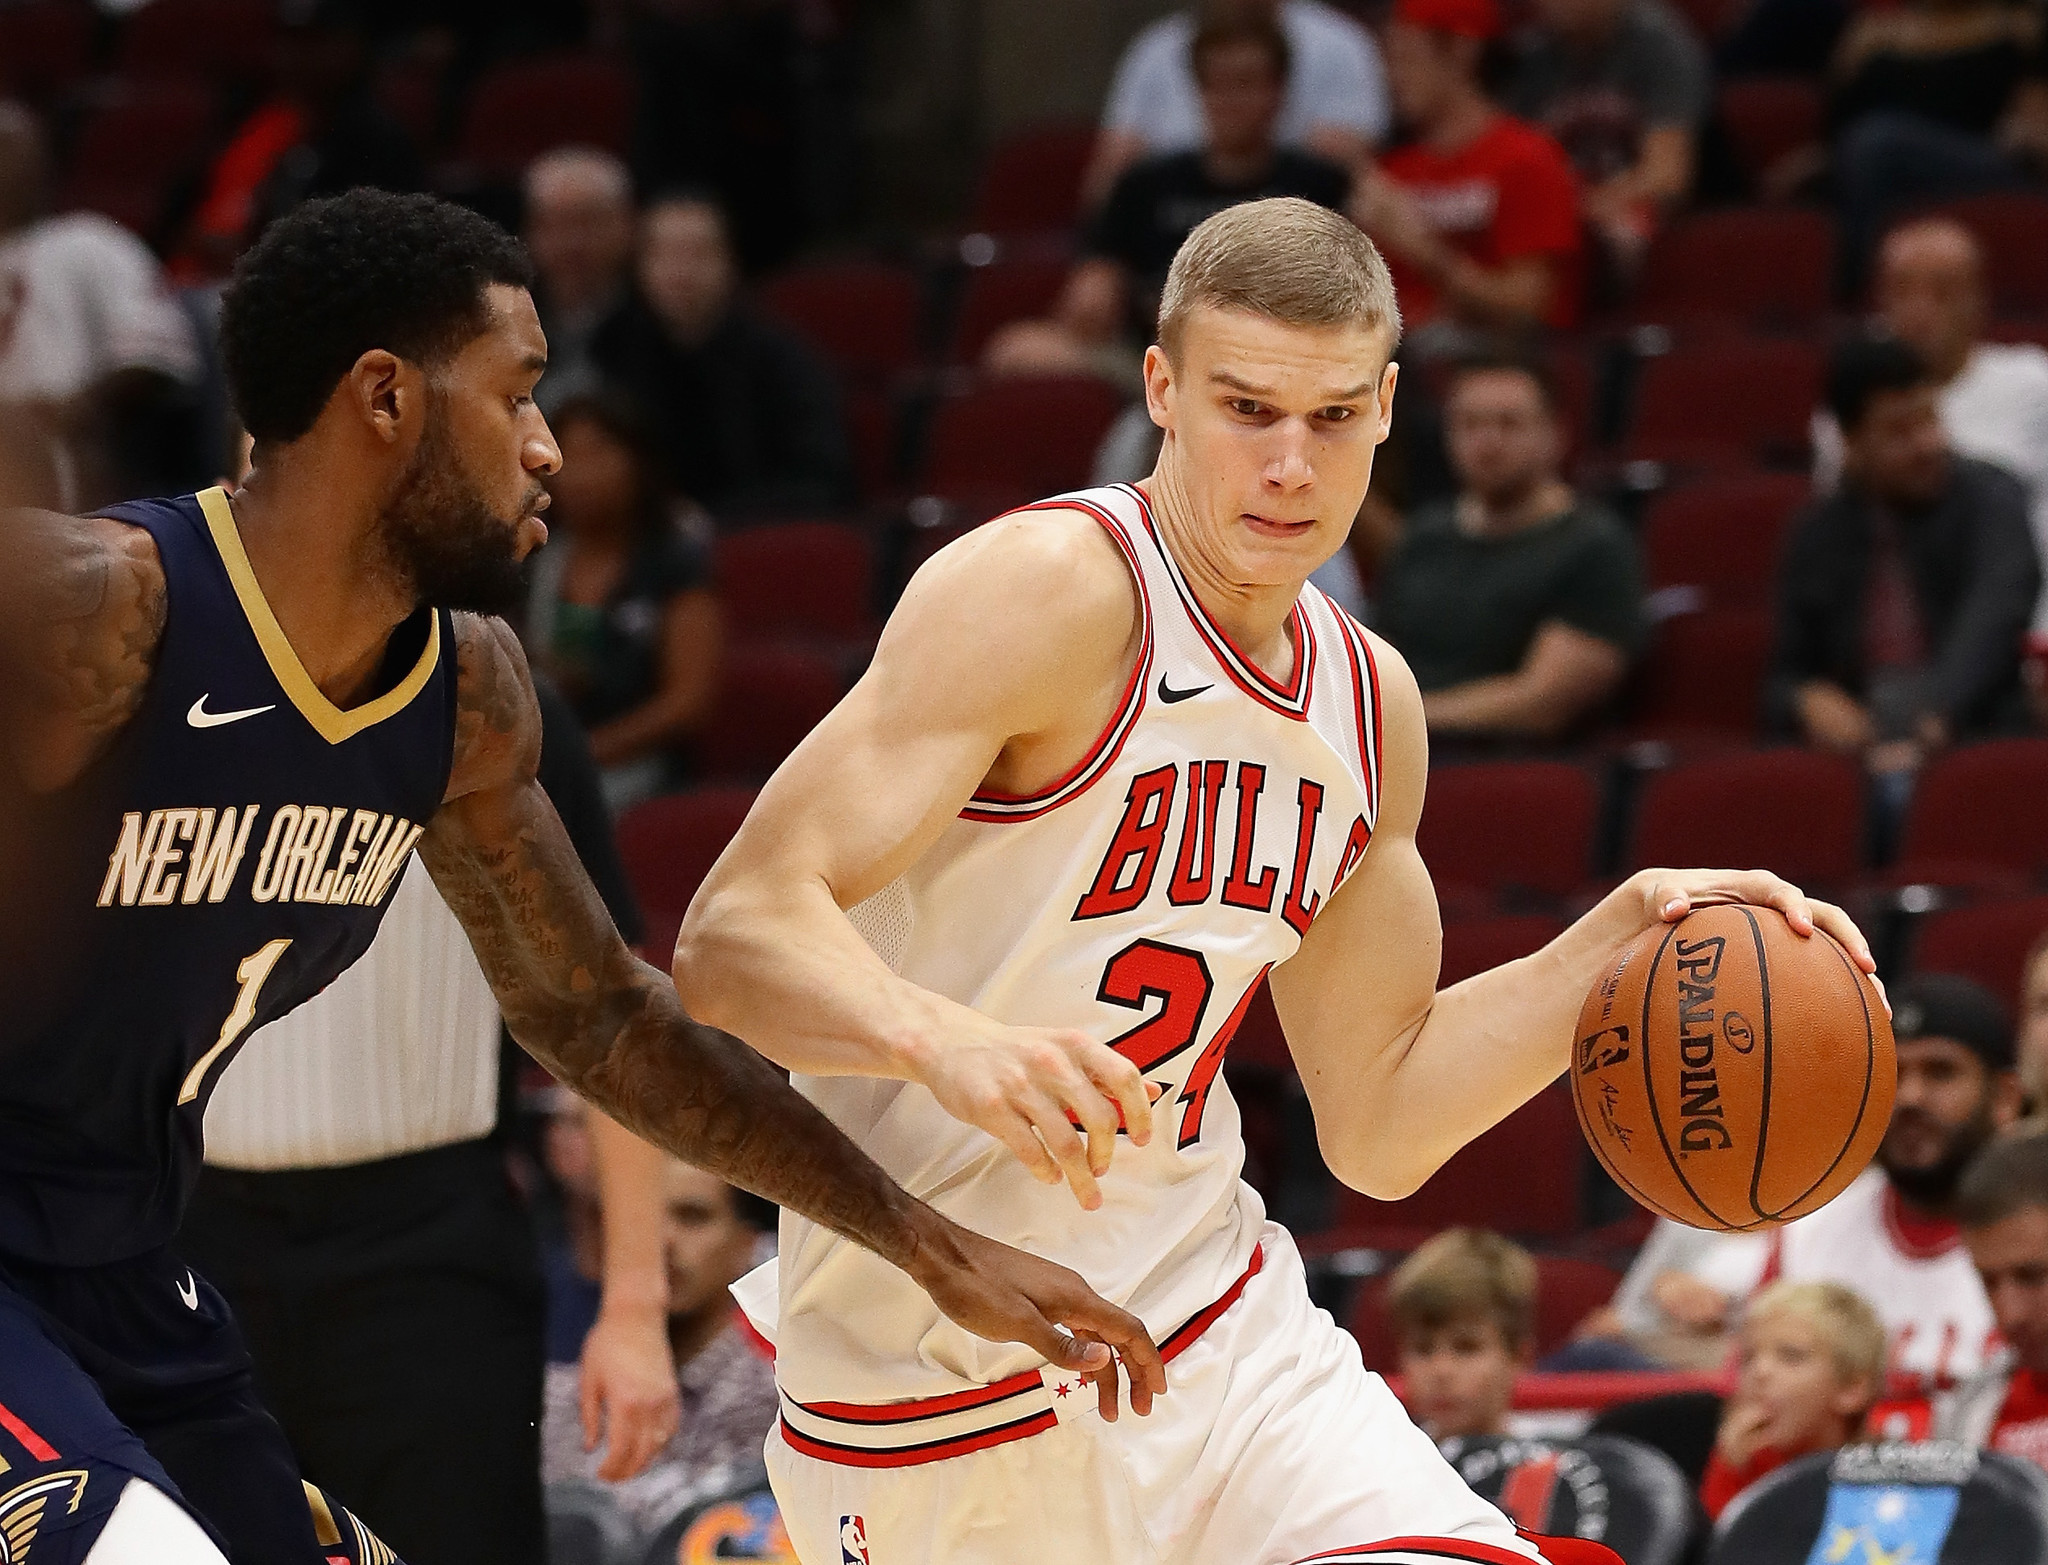 Ct-lauri-markkanen-shooting-approach-bulls-spt-1012-20171011